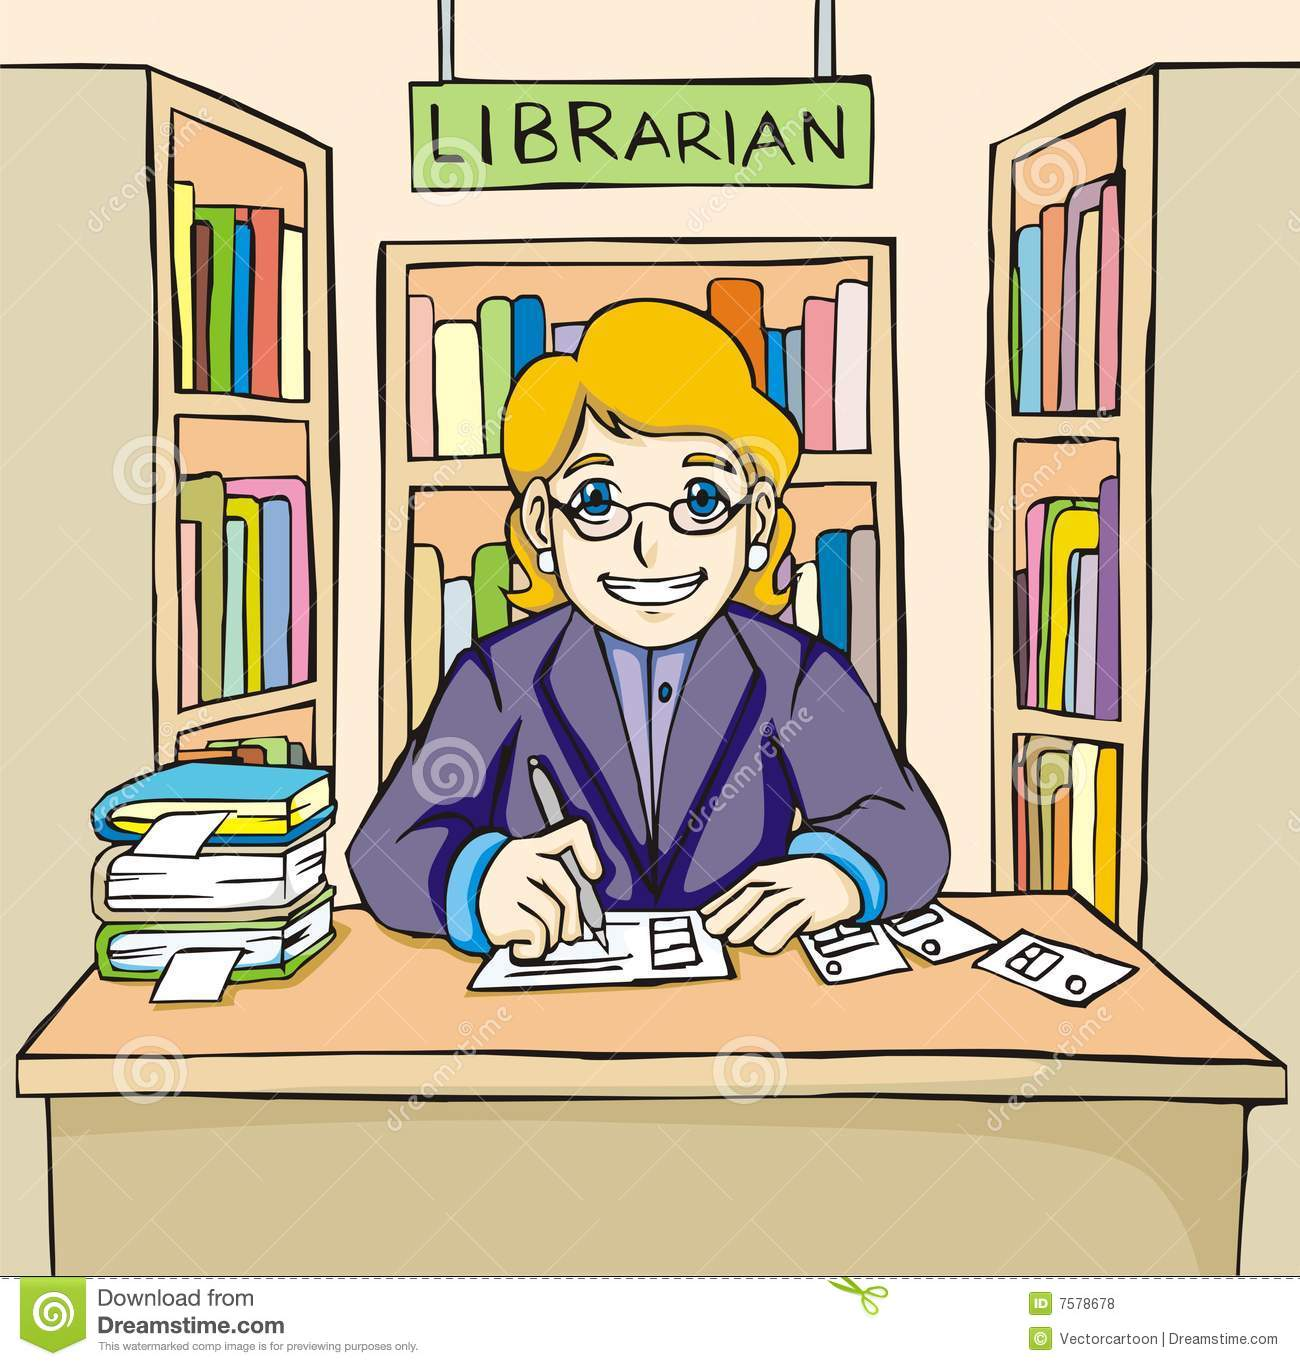 Librarian Pictures Clip Art-librarian pictures clip art-13